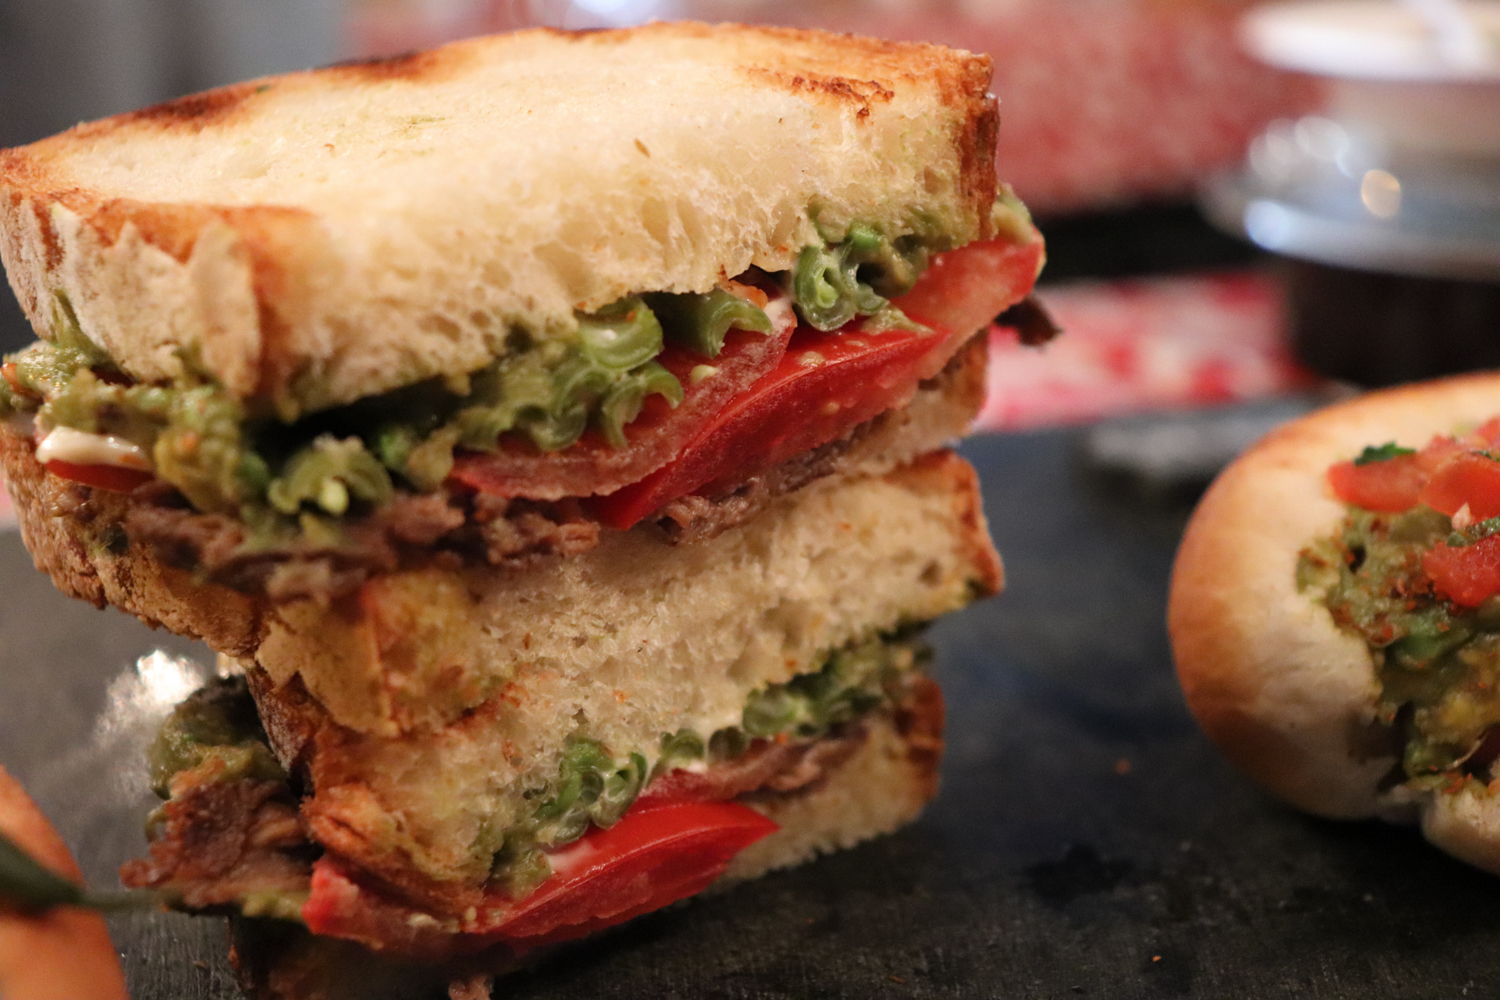 Sandwich-and-original-close-up-photo-II.png